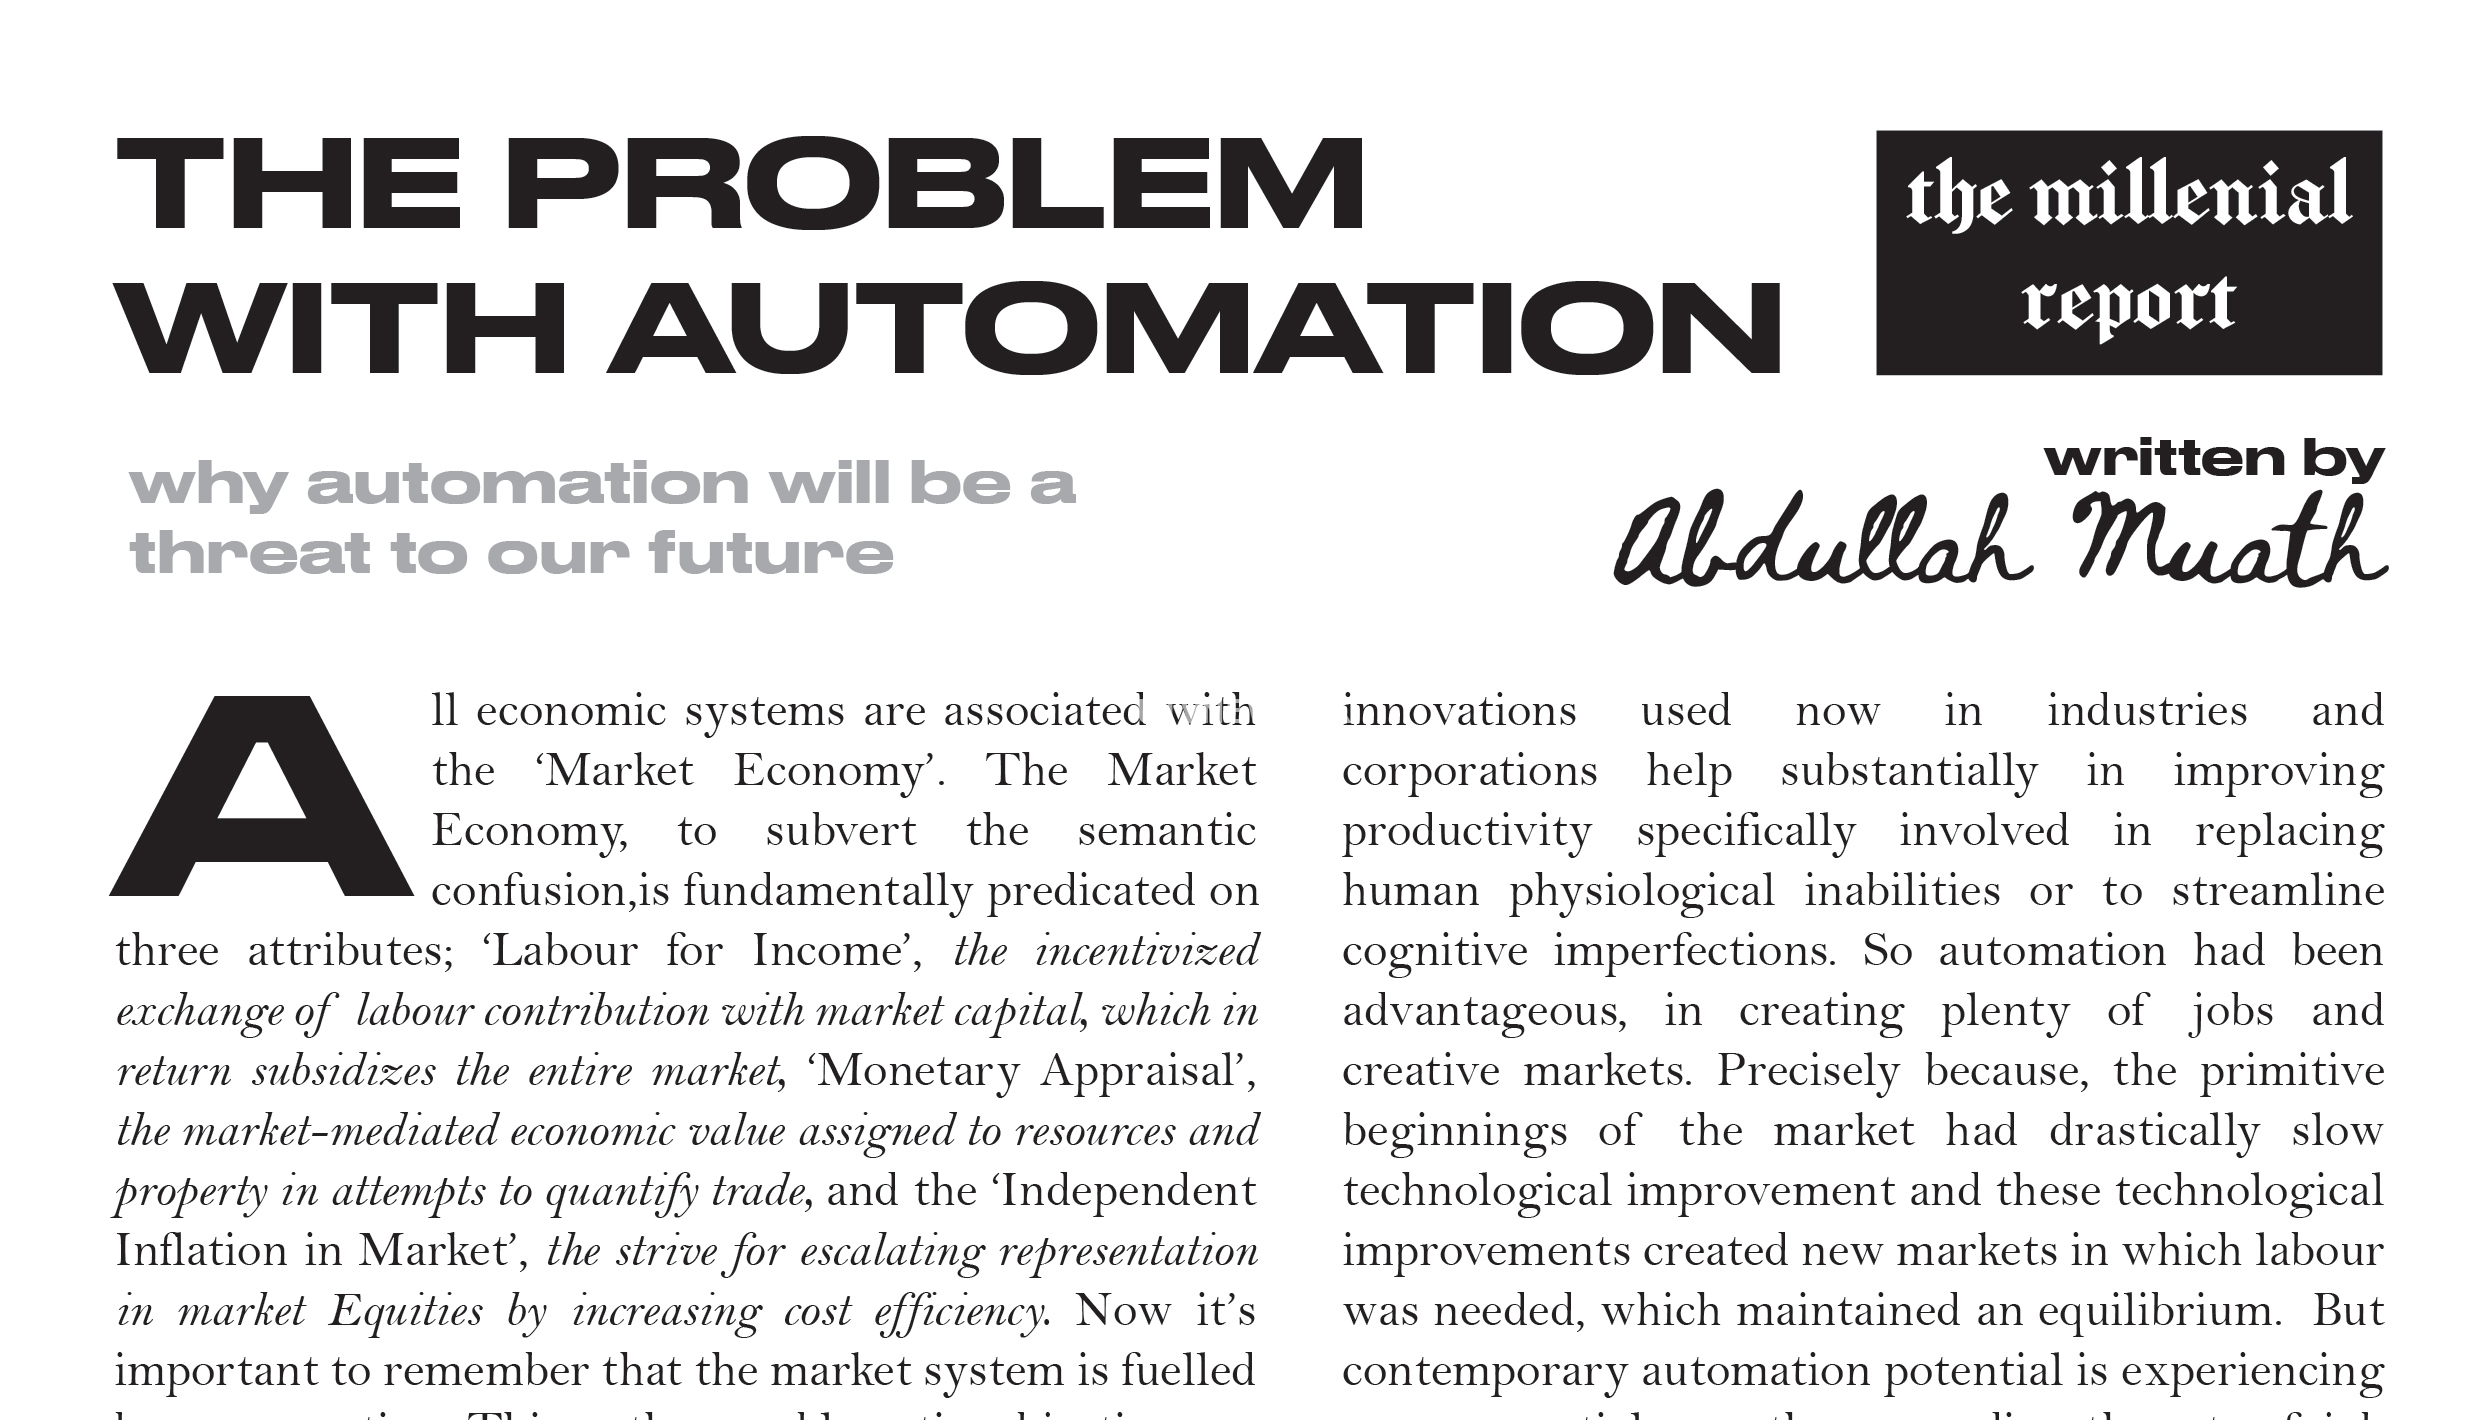 Why automation will be a threat to our future